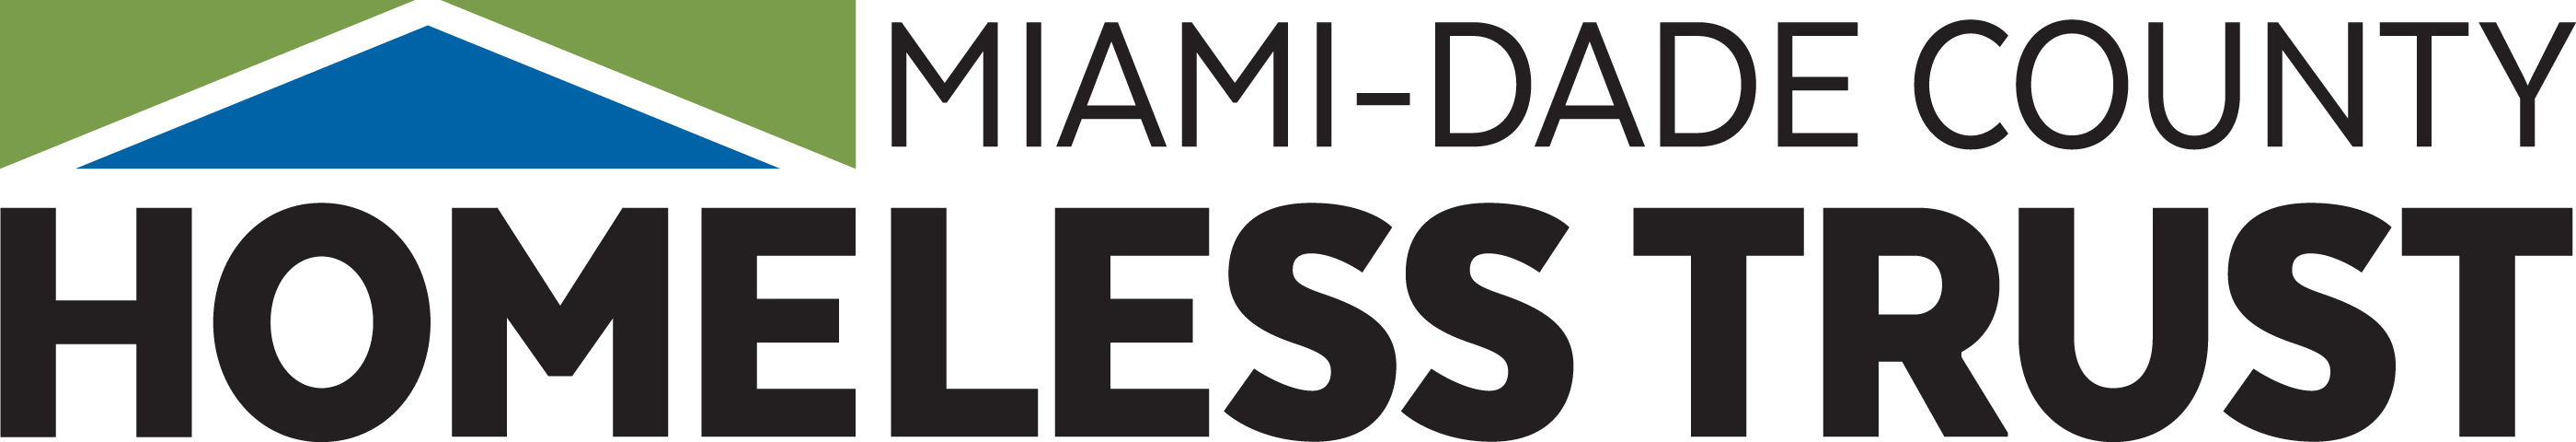 Miami-Dade County Homeless Trust logo